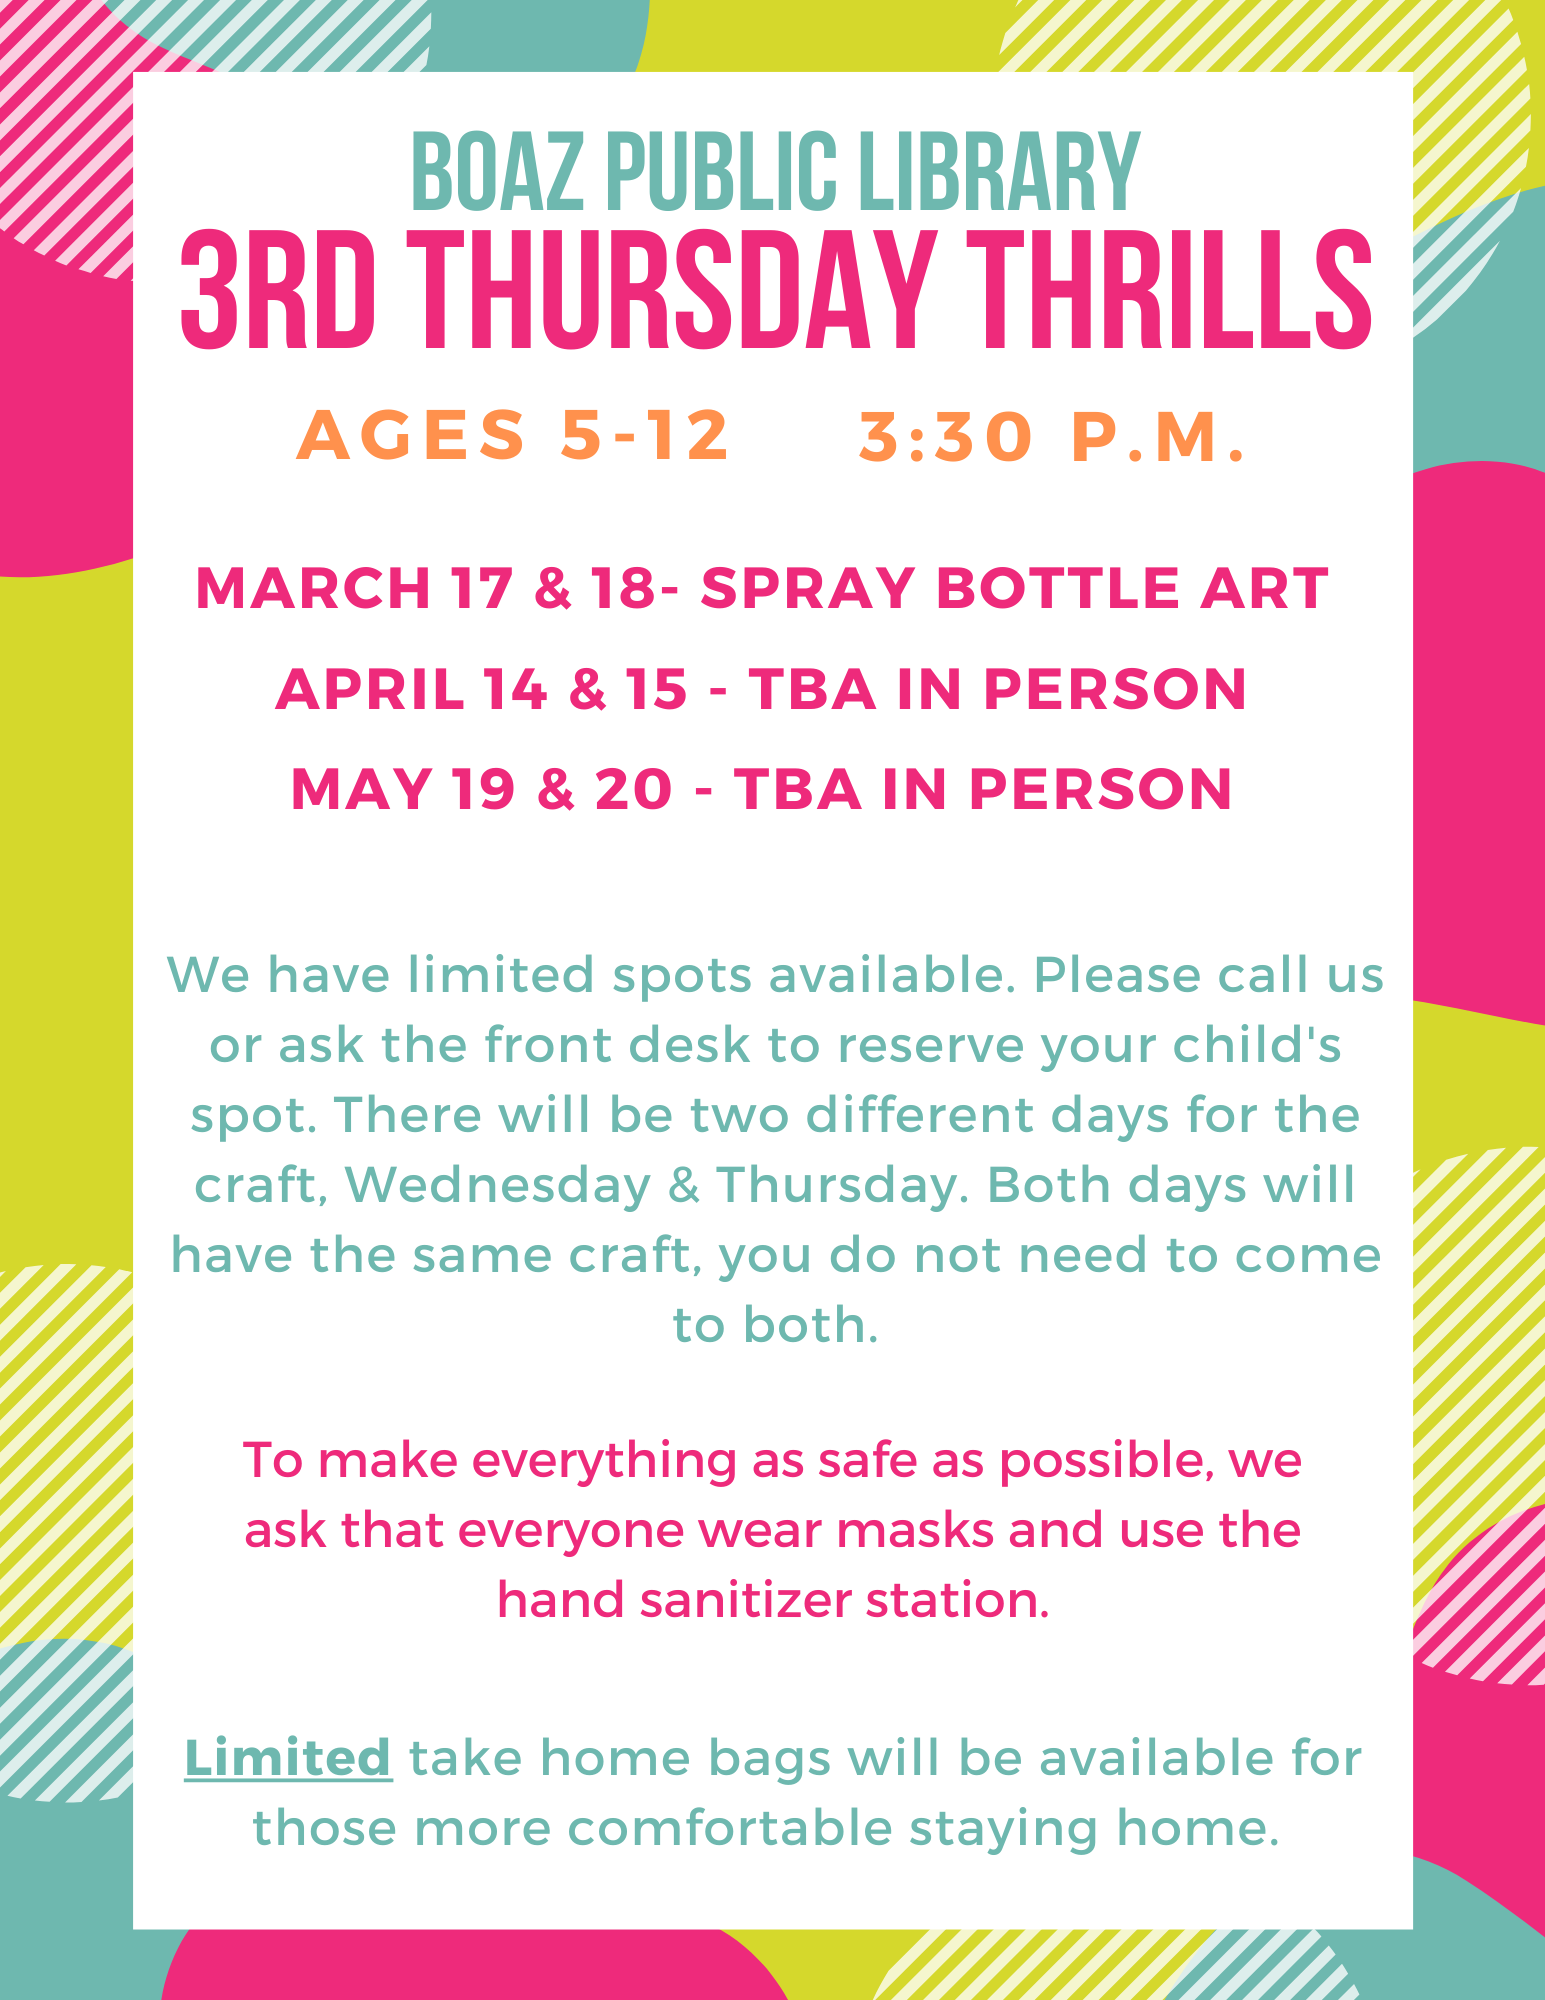 3rd Thursday Thrills